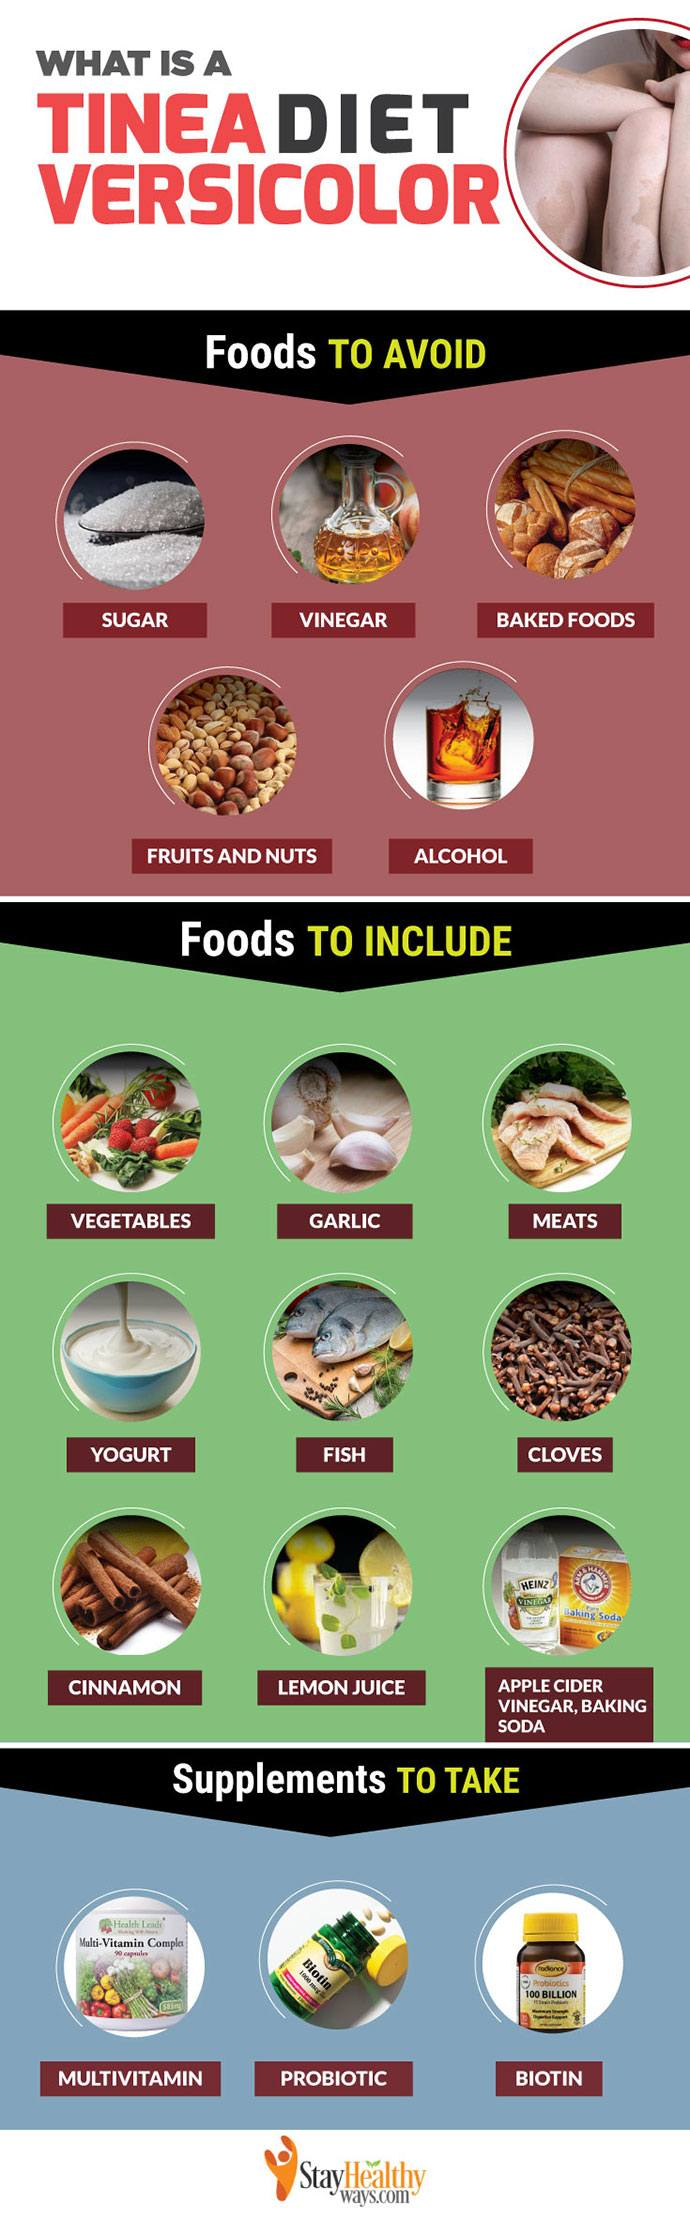 What Is a Tinea Versicolor Diet infographic